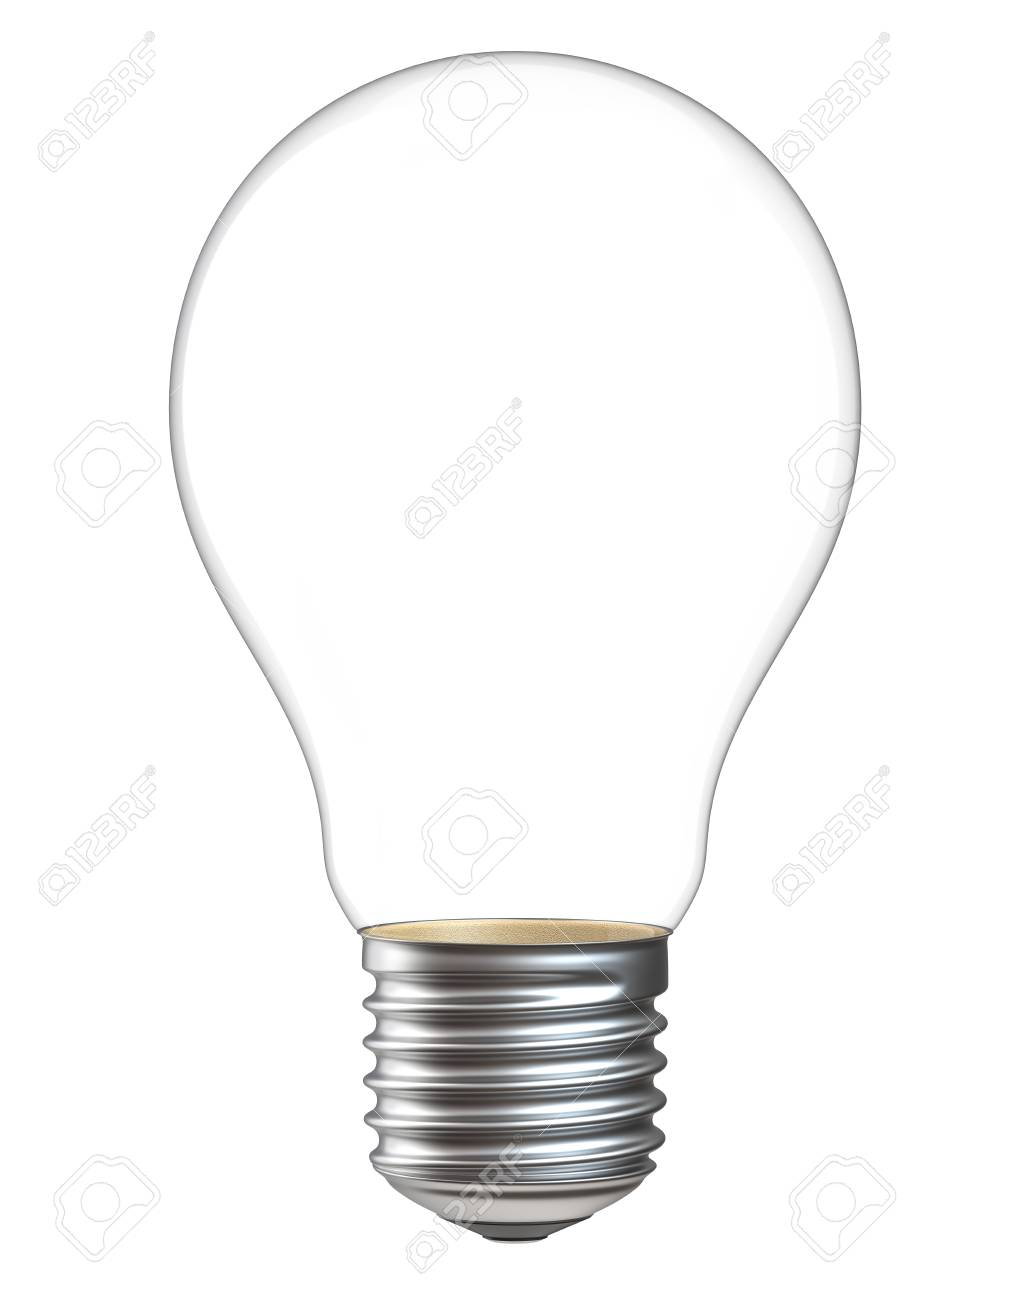 3d Illustration Of Empty Light Bulb Isolated On White Background ...